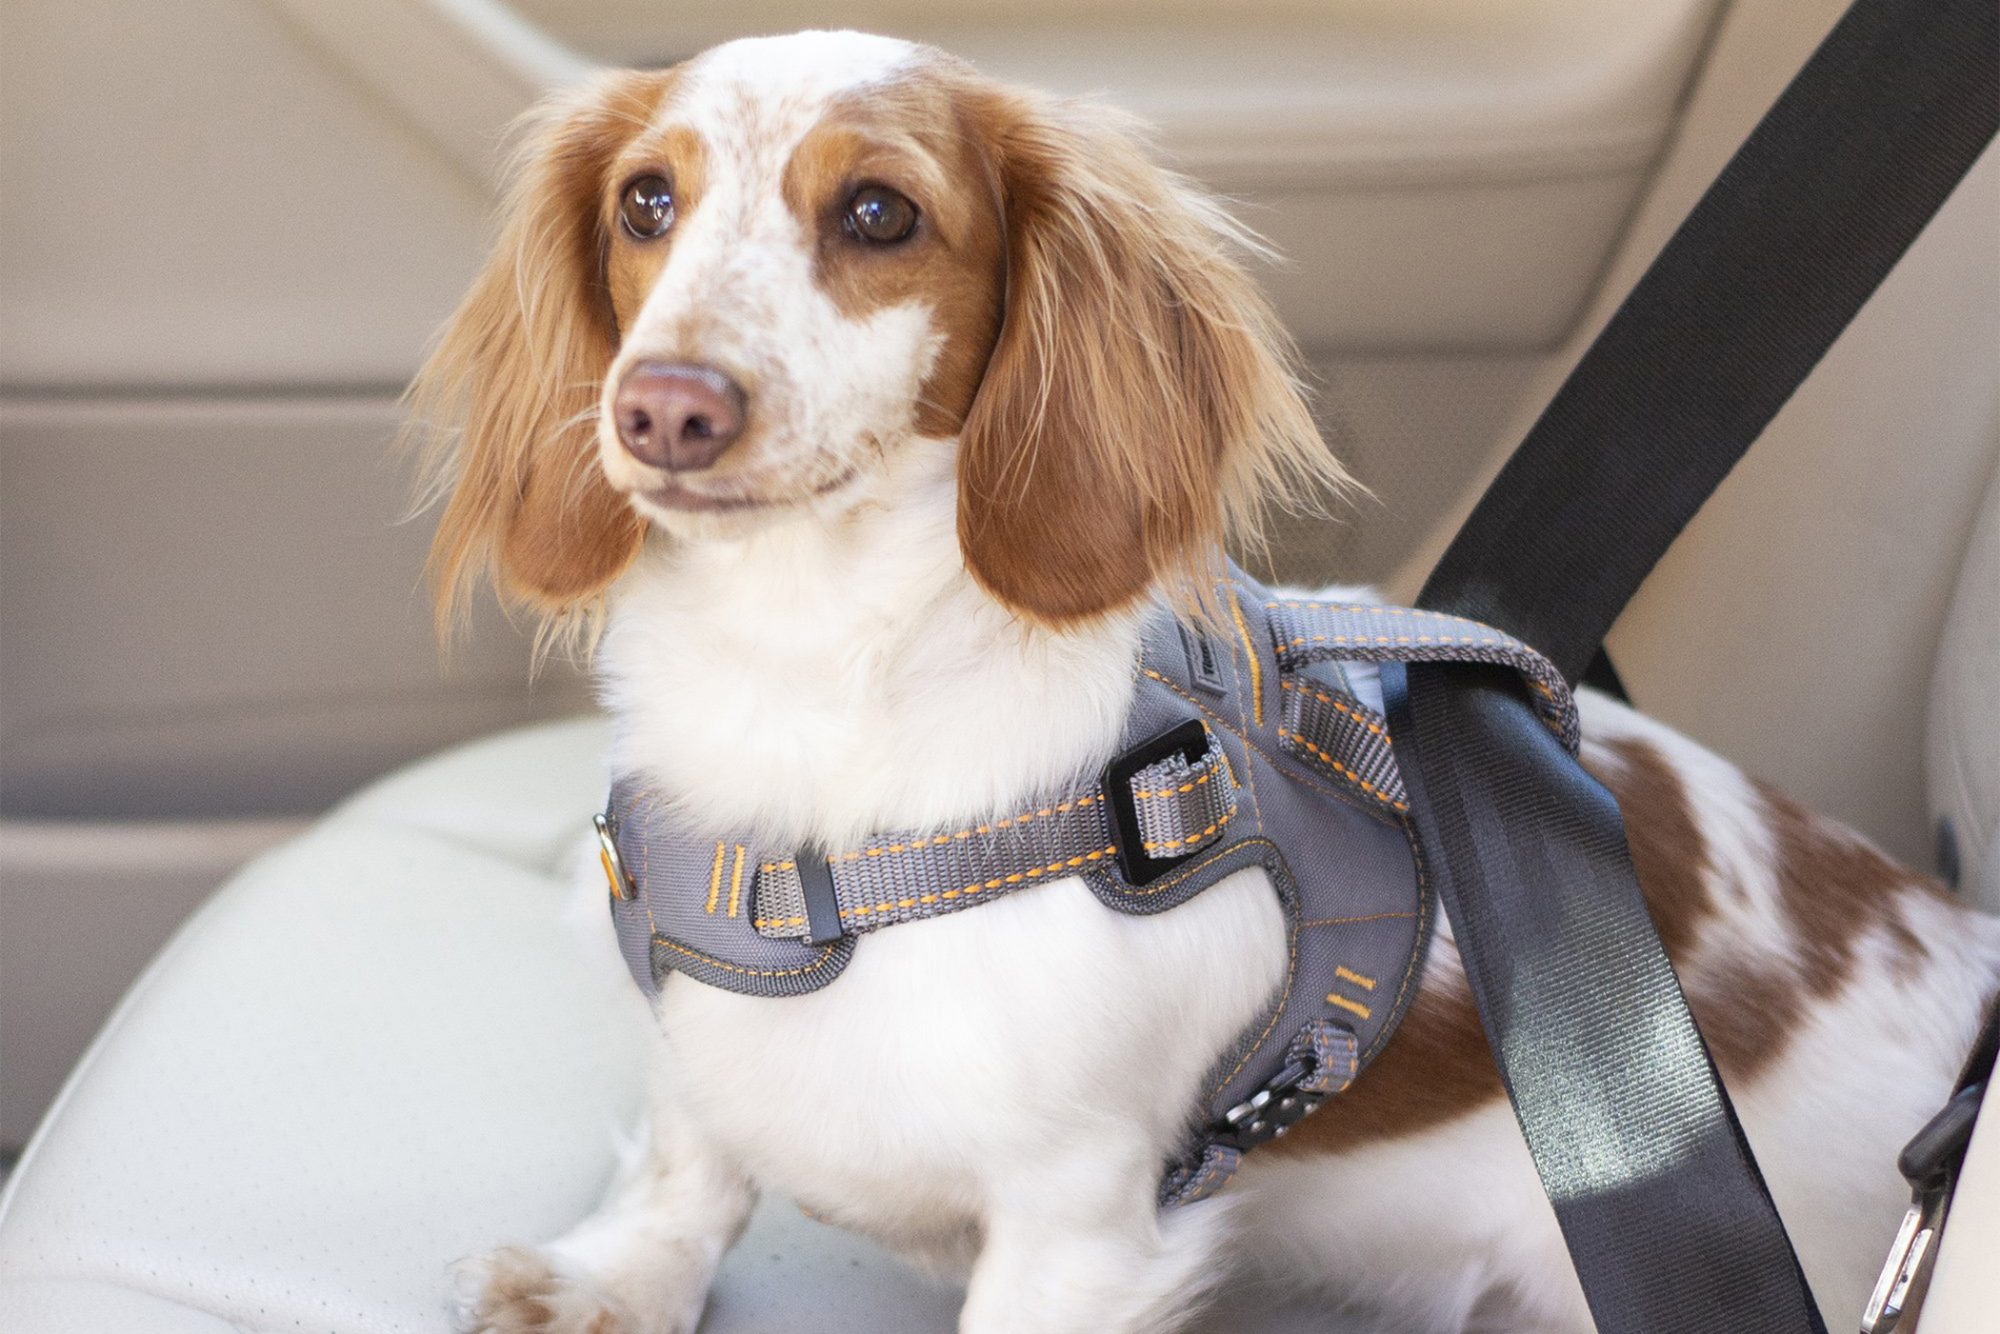 brown and white dog on car seat buckled in with harness